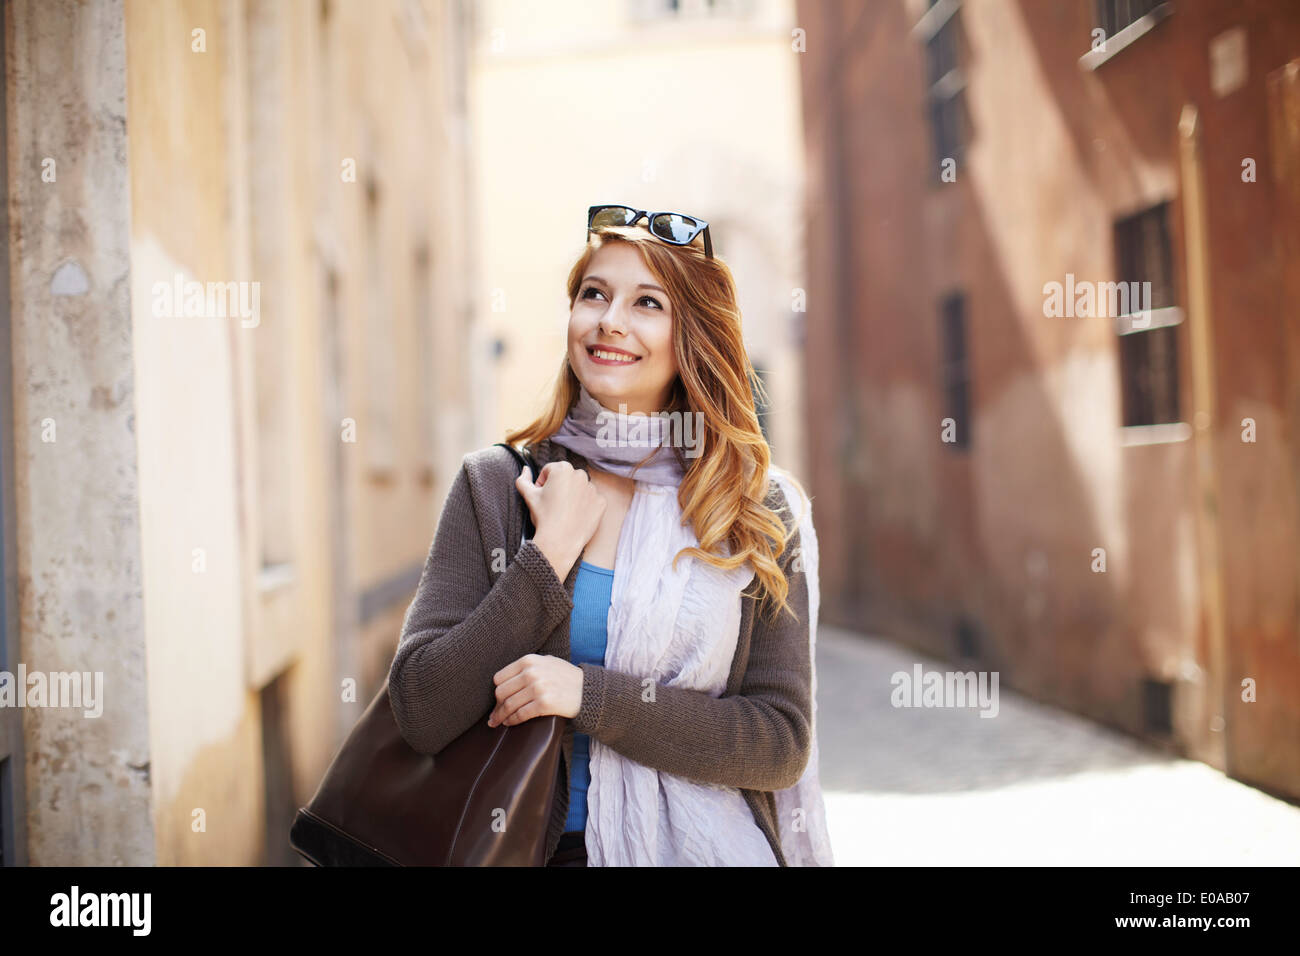 Young sophisticated woman exploring streets, Rome, Italy - Stock Image